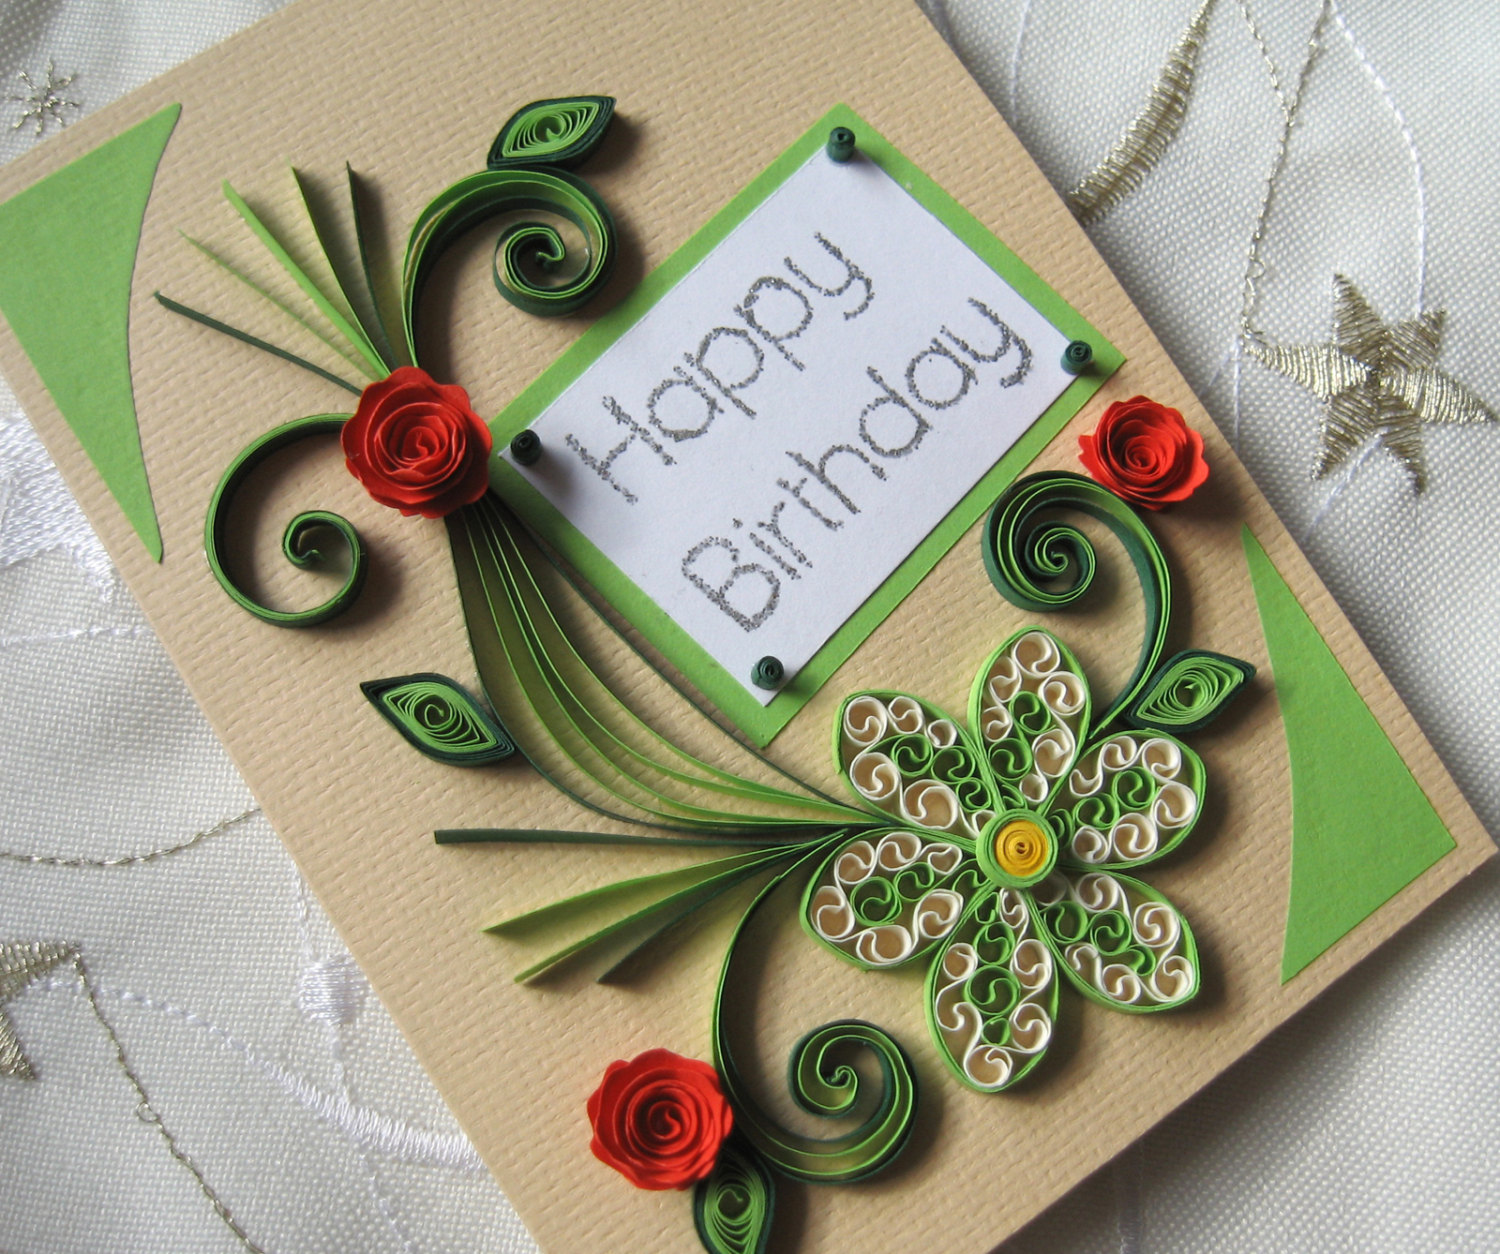 Specal Friend Embellished Birthday Greeting Card Paper Gallery Cards